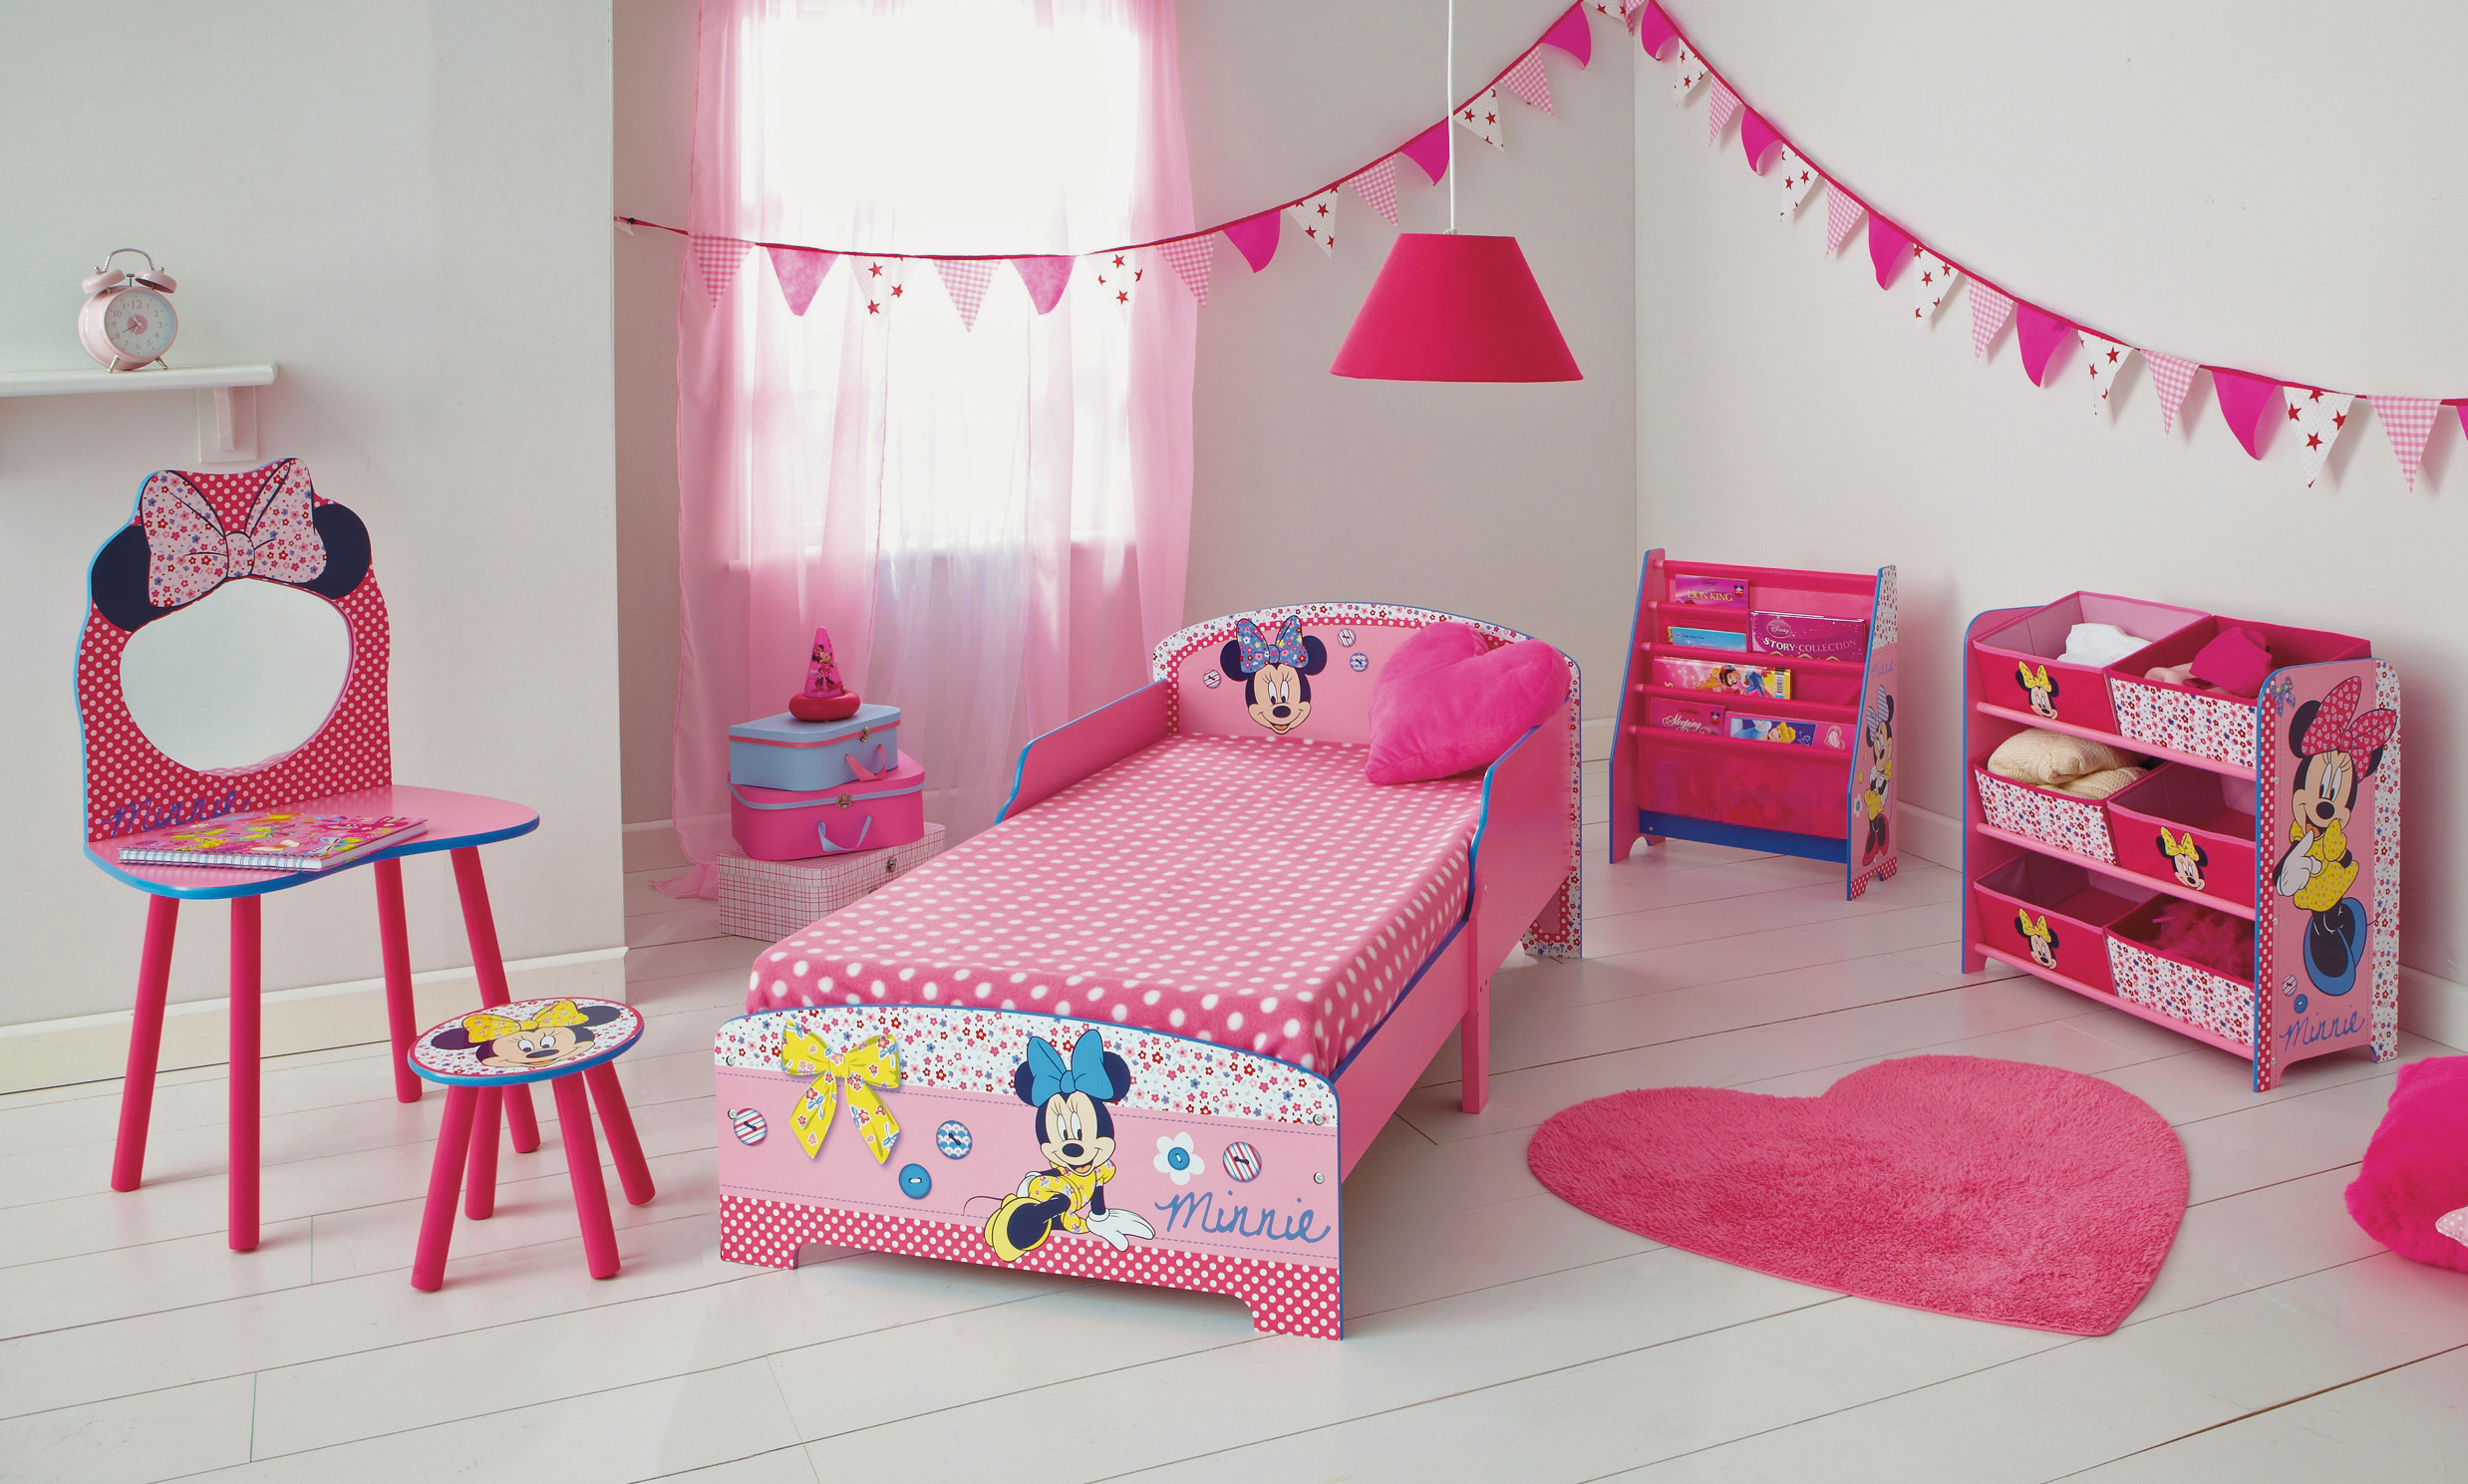 Minnie Mouse Chest of Drawers | Minnie Mouse Toddler Bed with Storage | Minnie Mouse Wall Decor